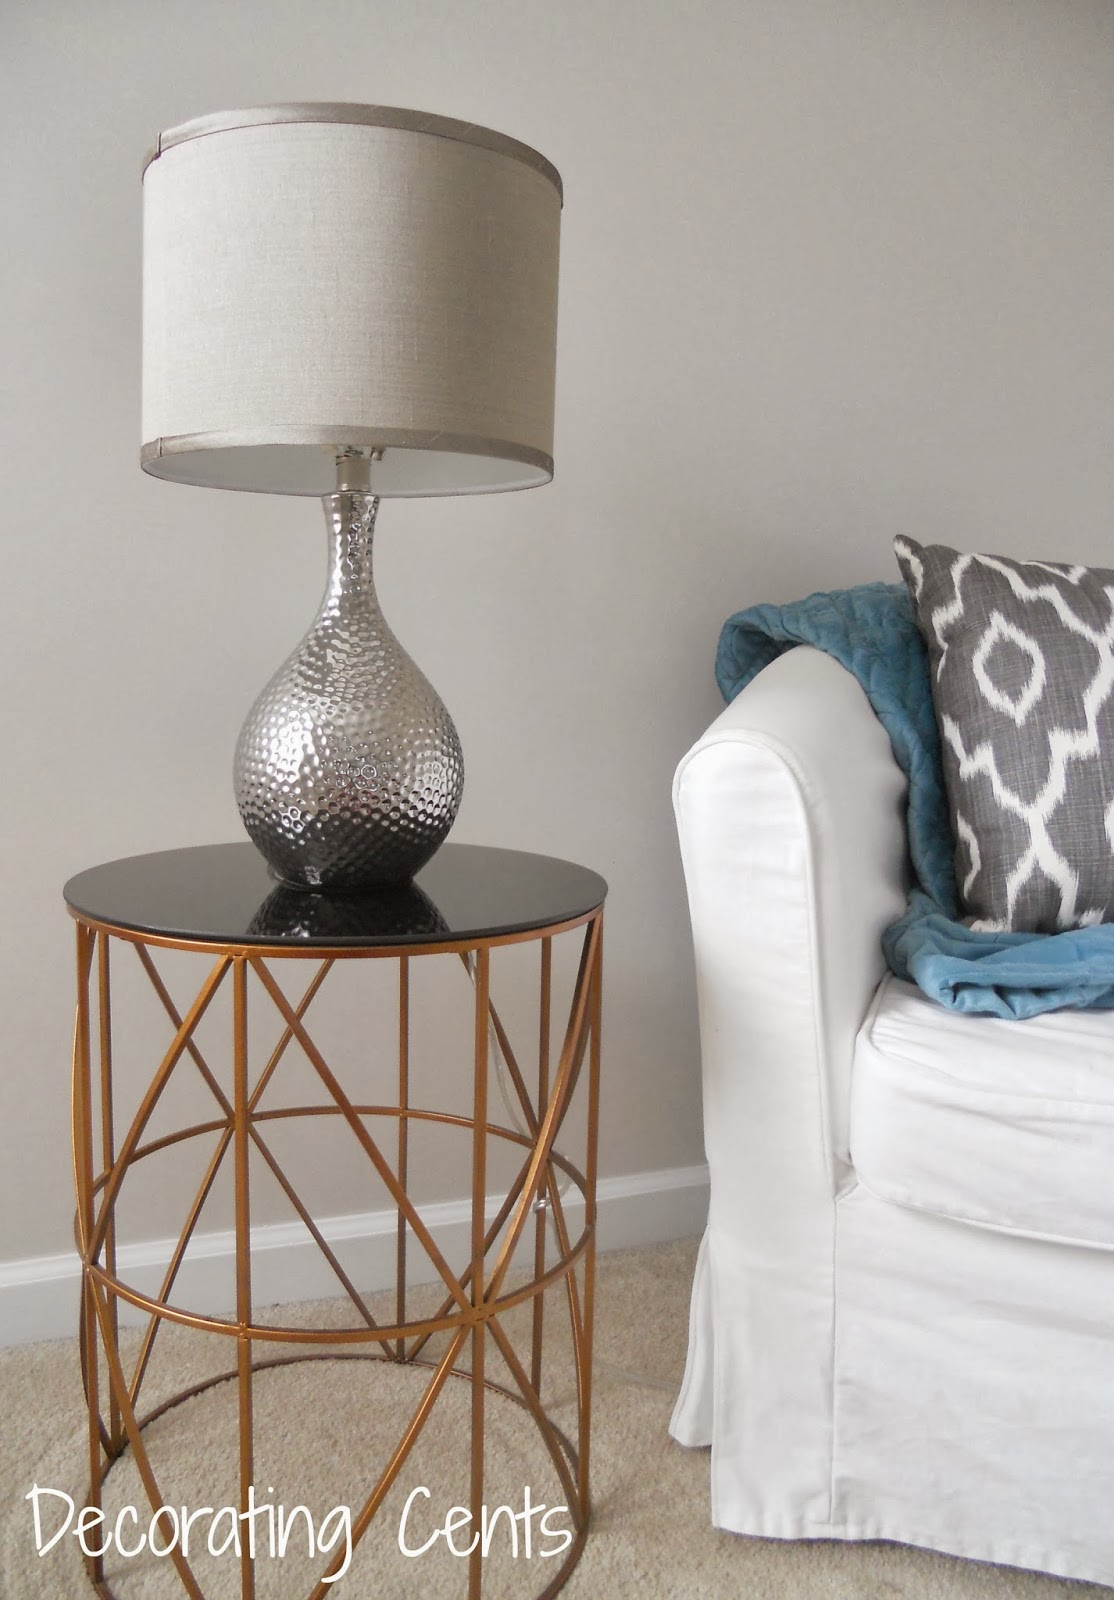 Decorating Cents Bedroom Side Table Lamp